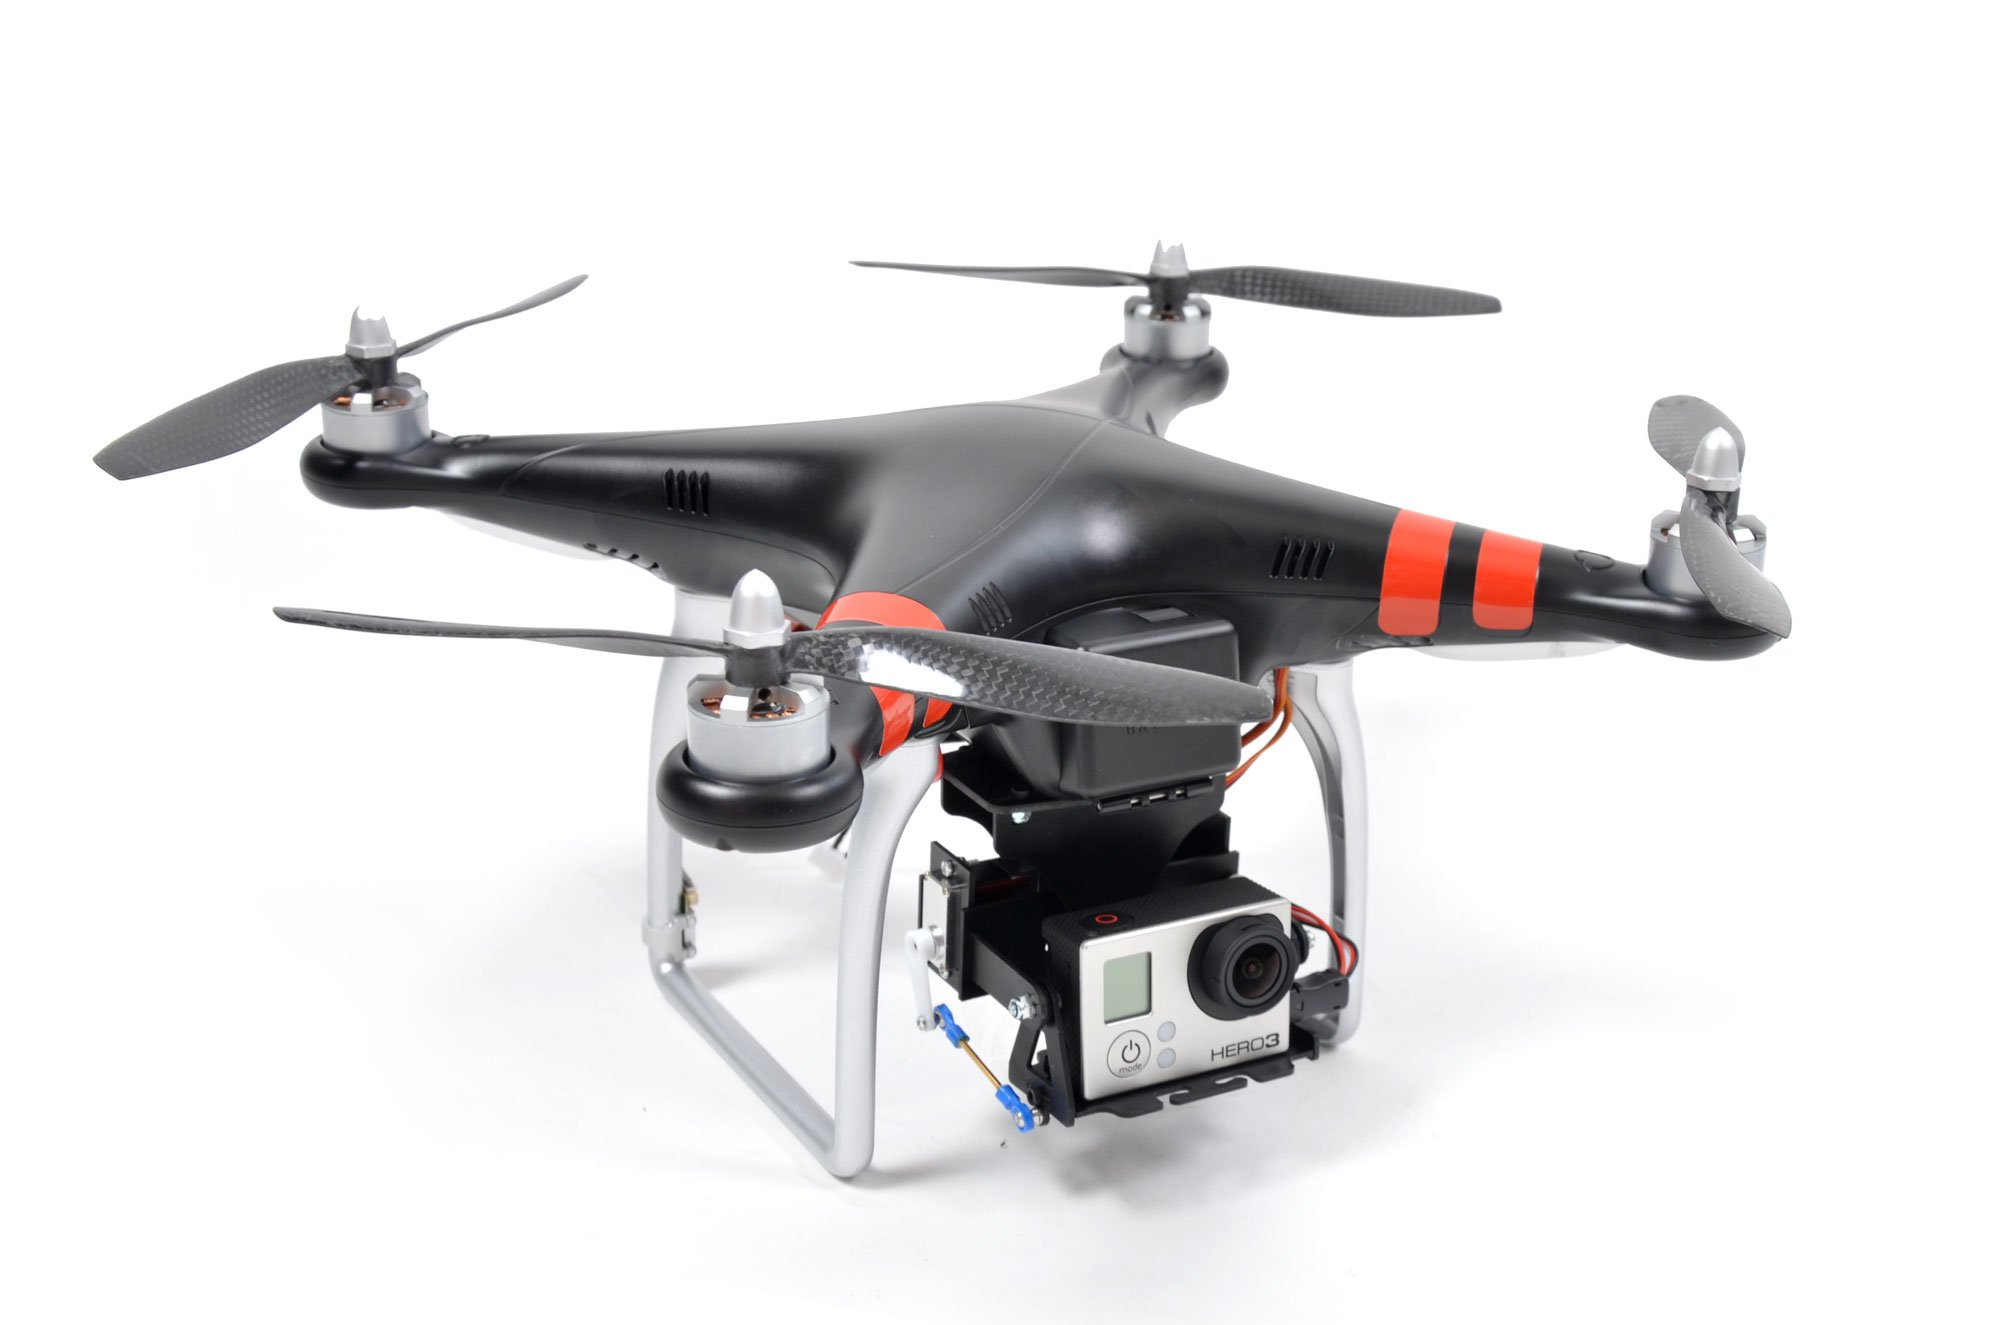 US lags as commercial drones take off around globe - sUAS News - The Business of Drones